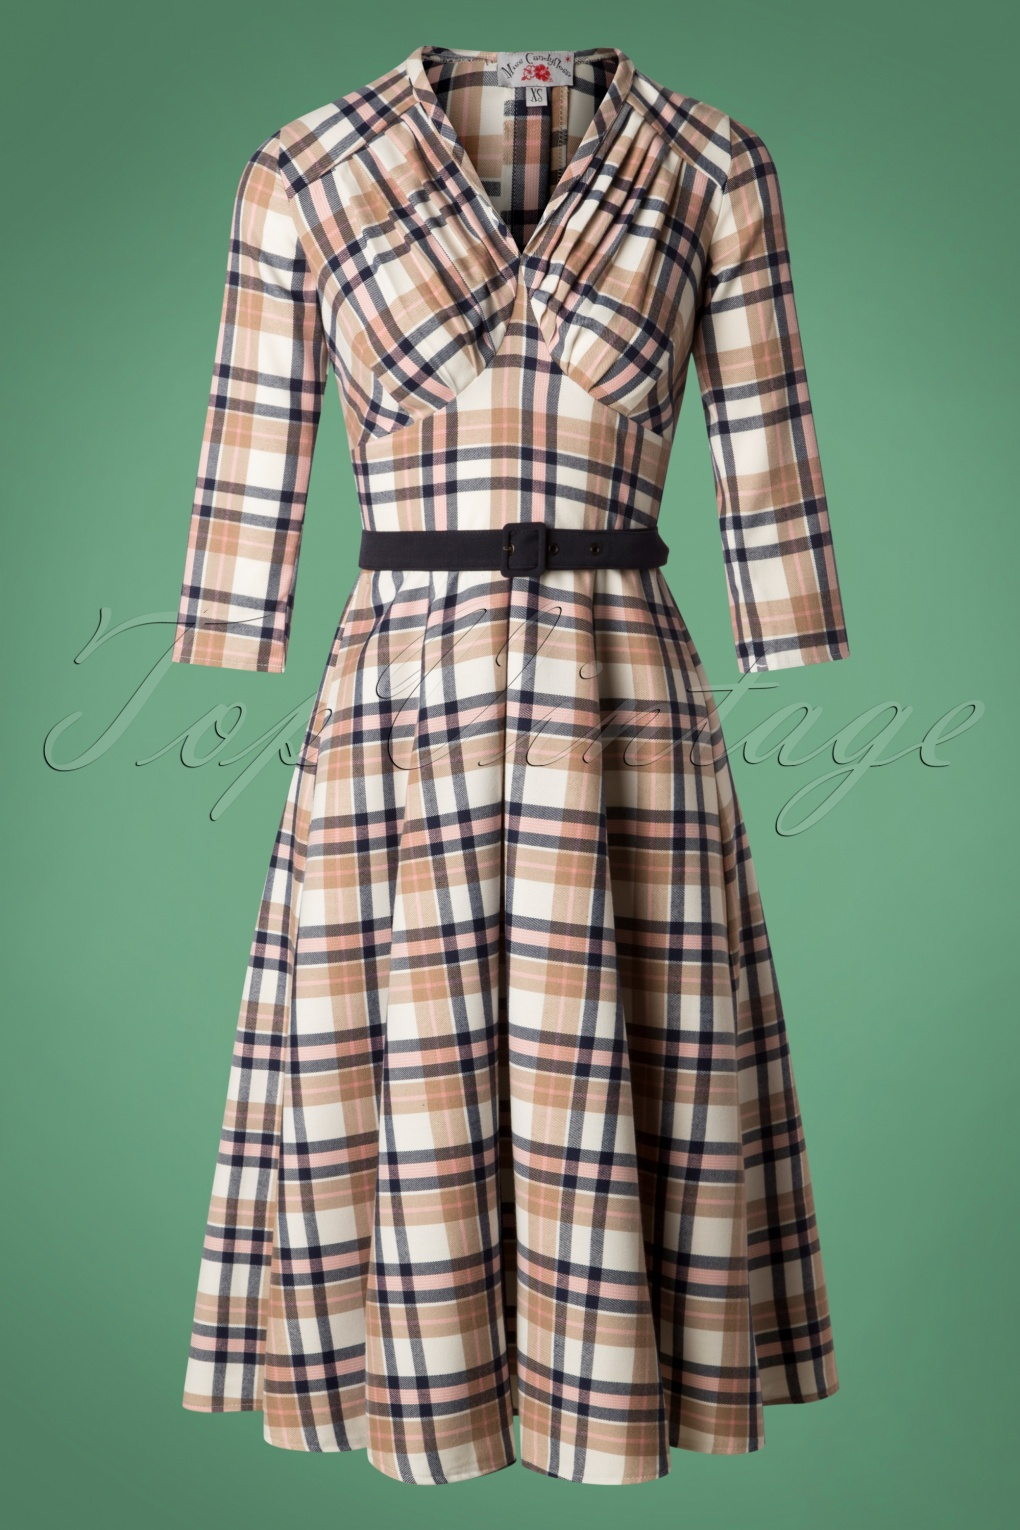 50 Vintage Inspired Clothing Stores 50s Miss C Signature Swing Dress in Tan Tartan £92.02 AT vintagedancer.com